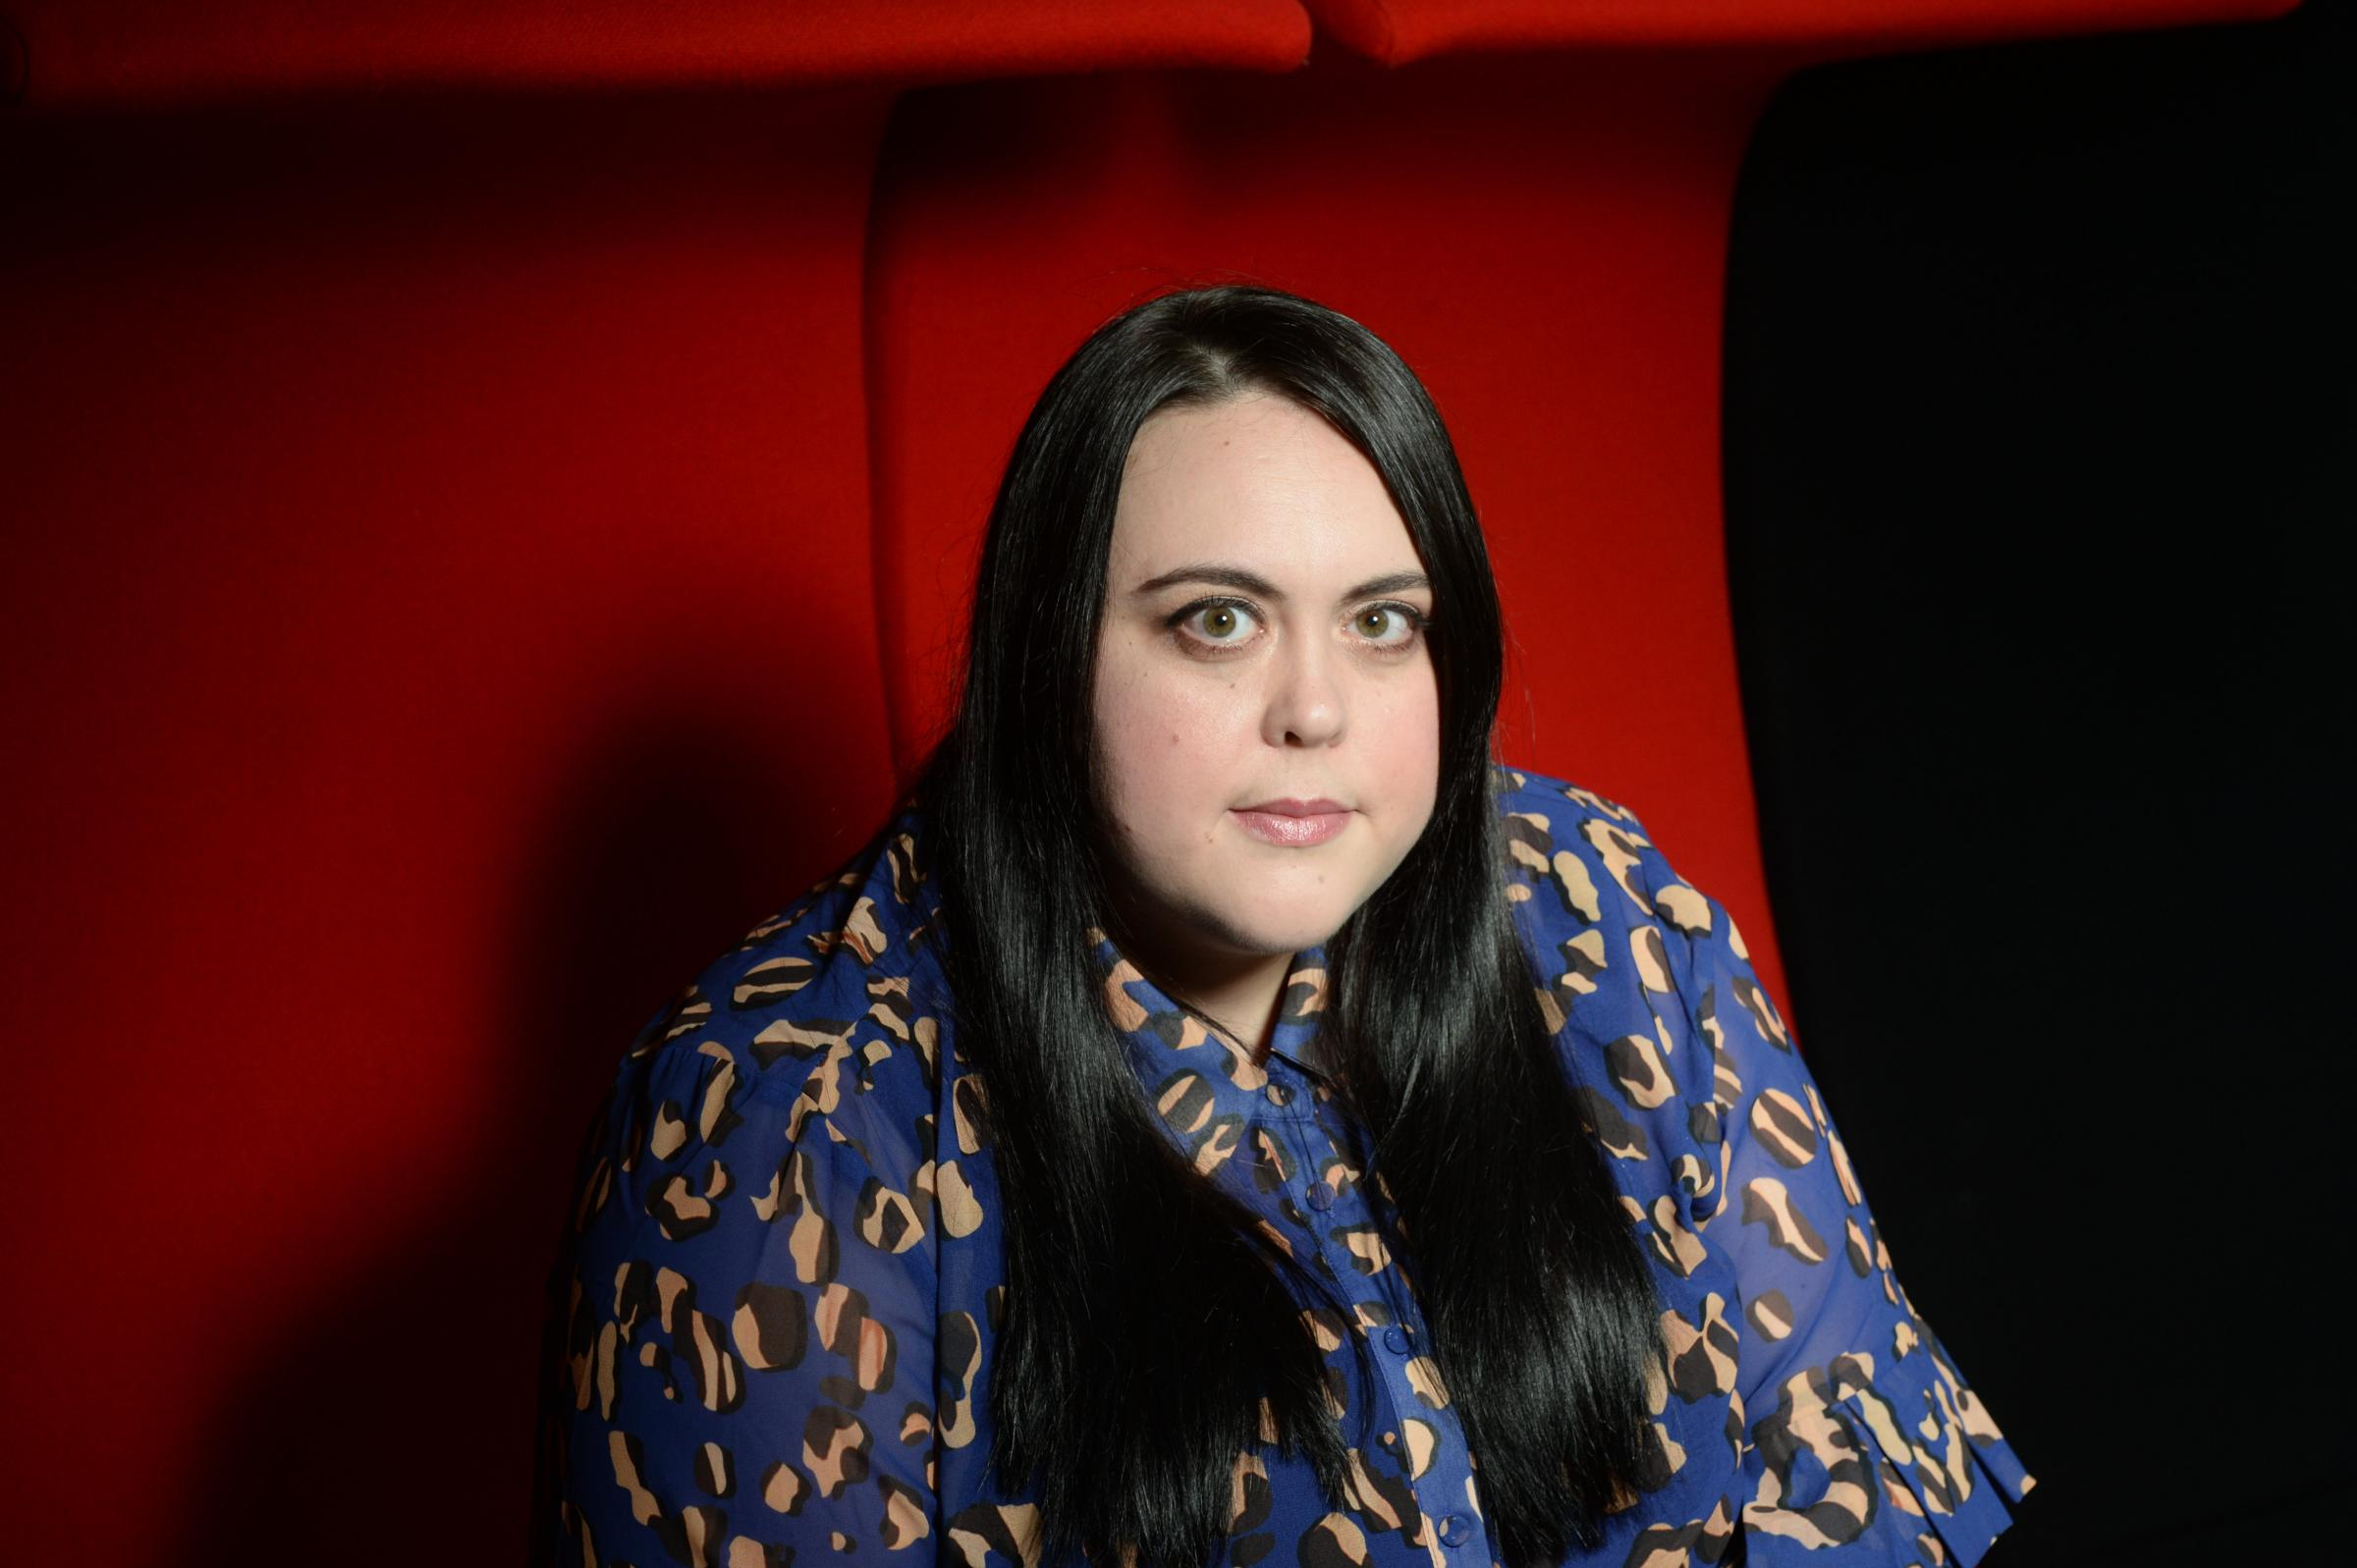 Sharon Rooney nude (76 photos), photo Paparazzi, YouTube, cameltoe 2016